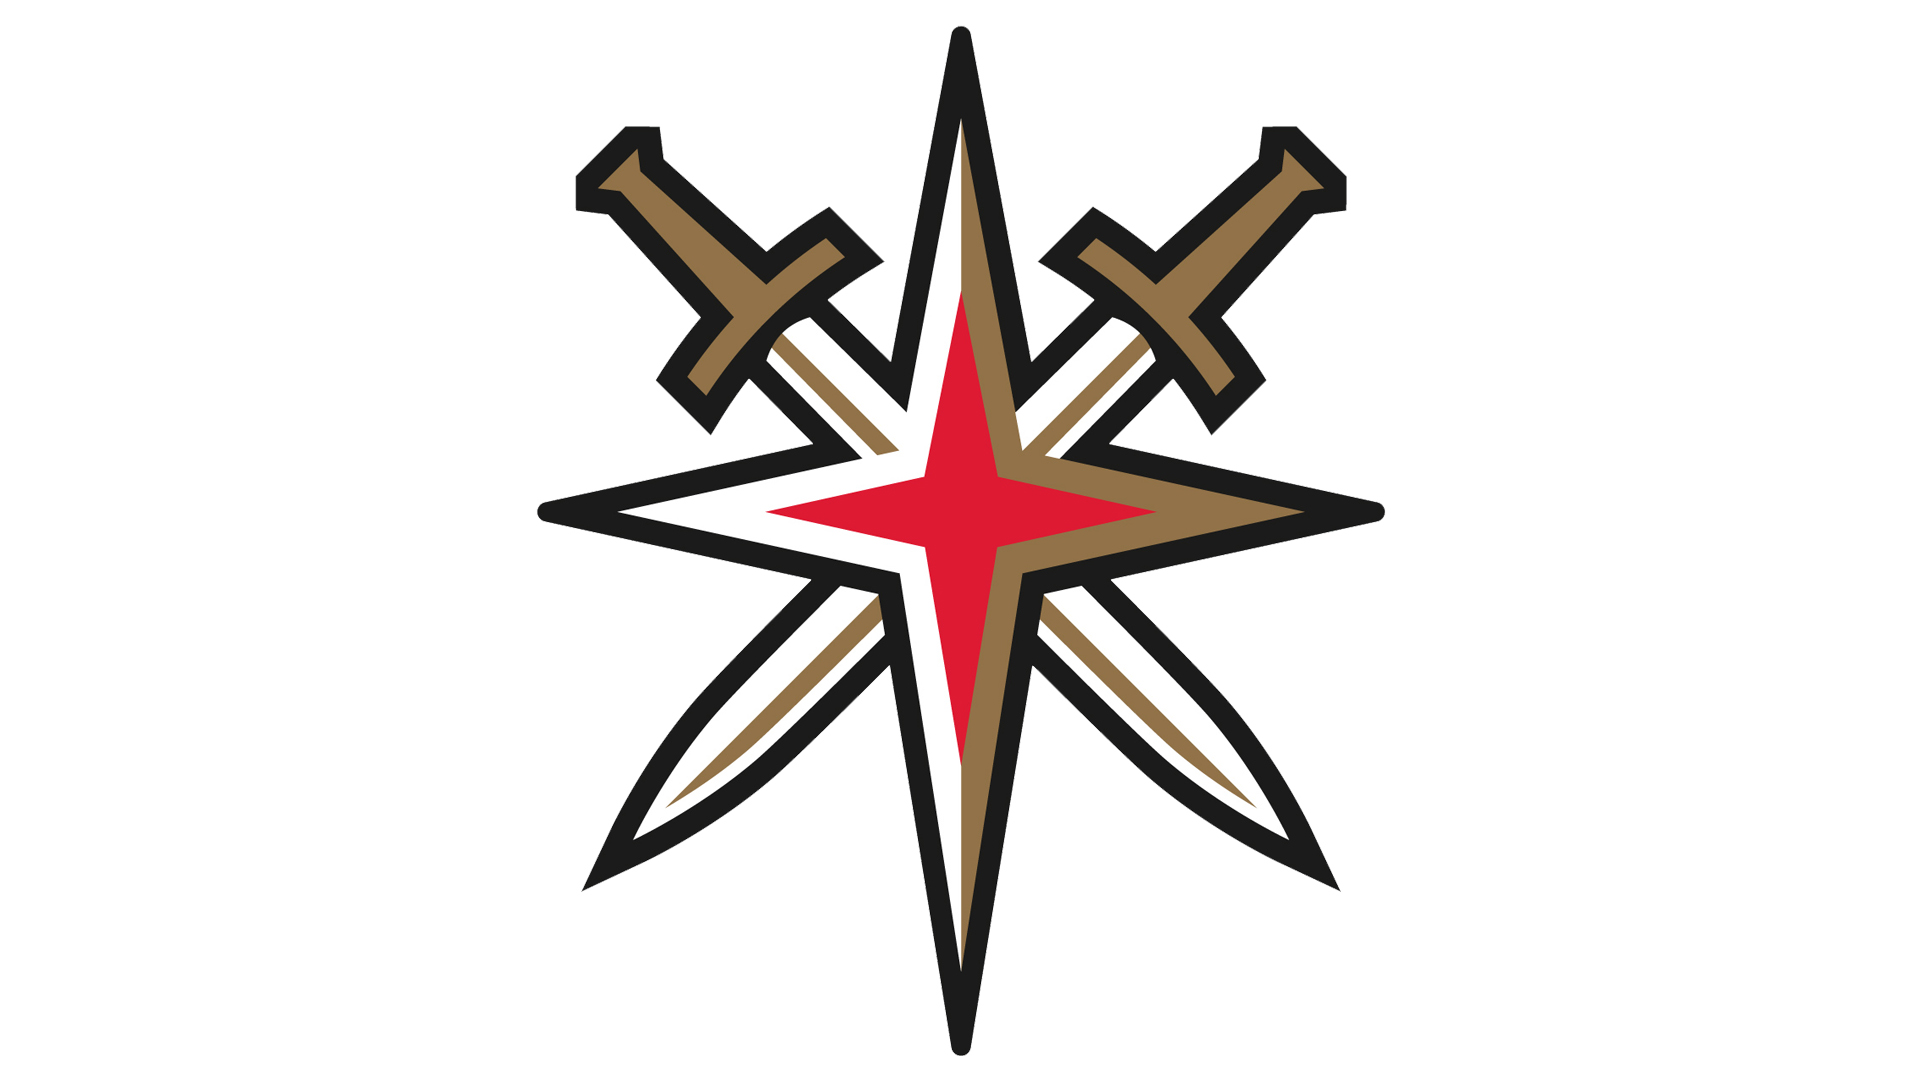 Meaning Vegas Golden Knights logo and symbol.